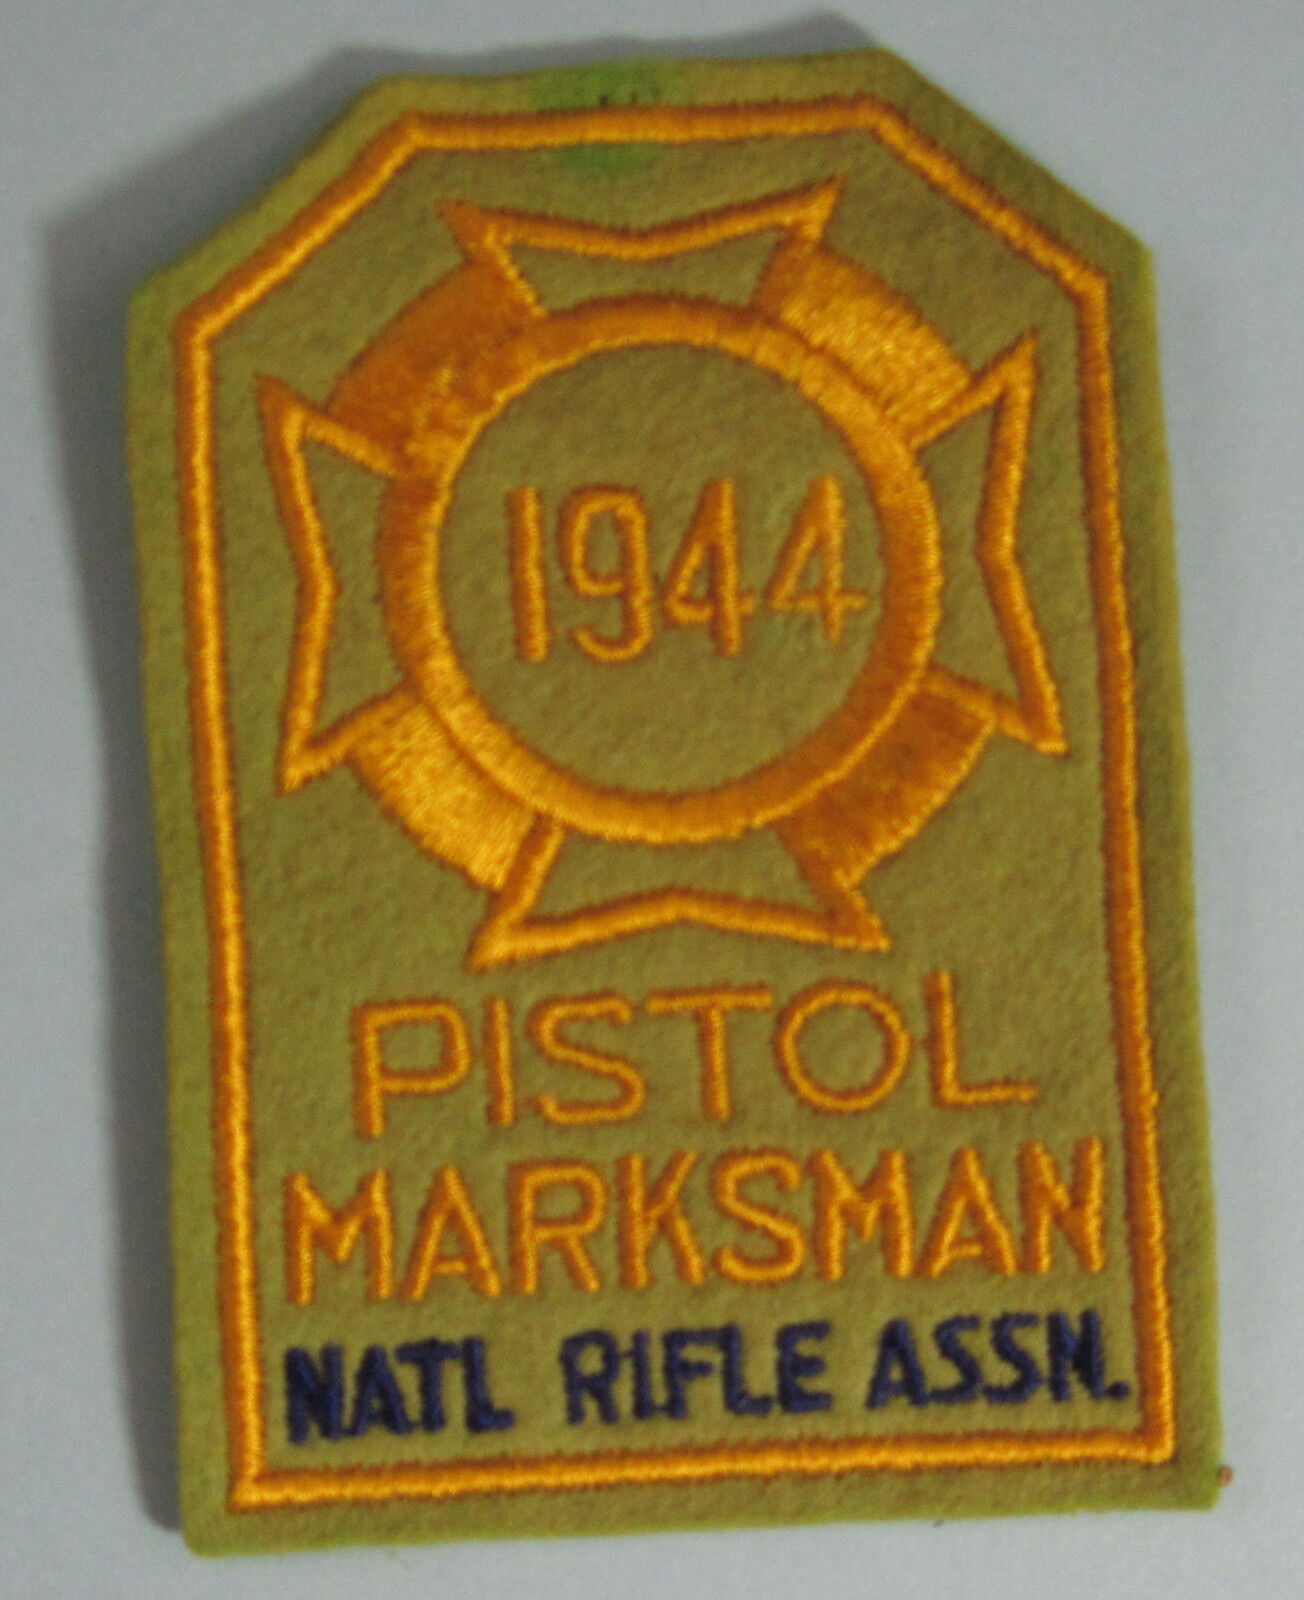 1944 1944 1944 Pistol Marksman NRA Patch...Free Shipping 8fb5ec